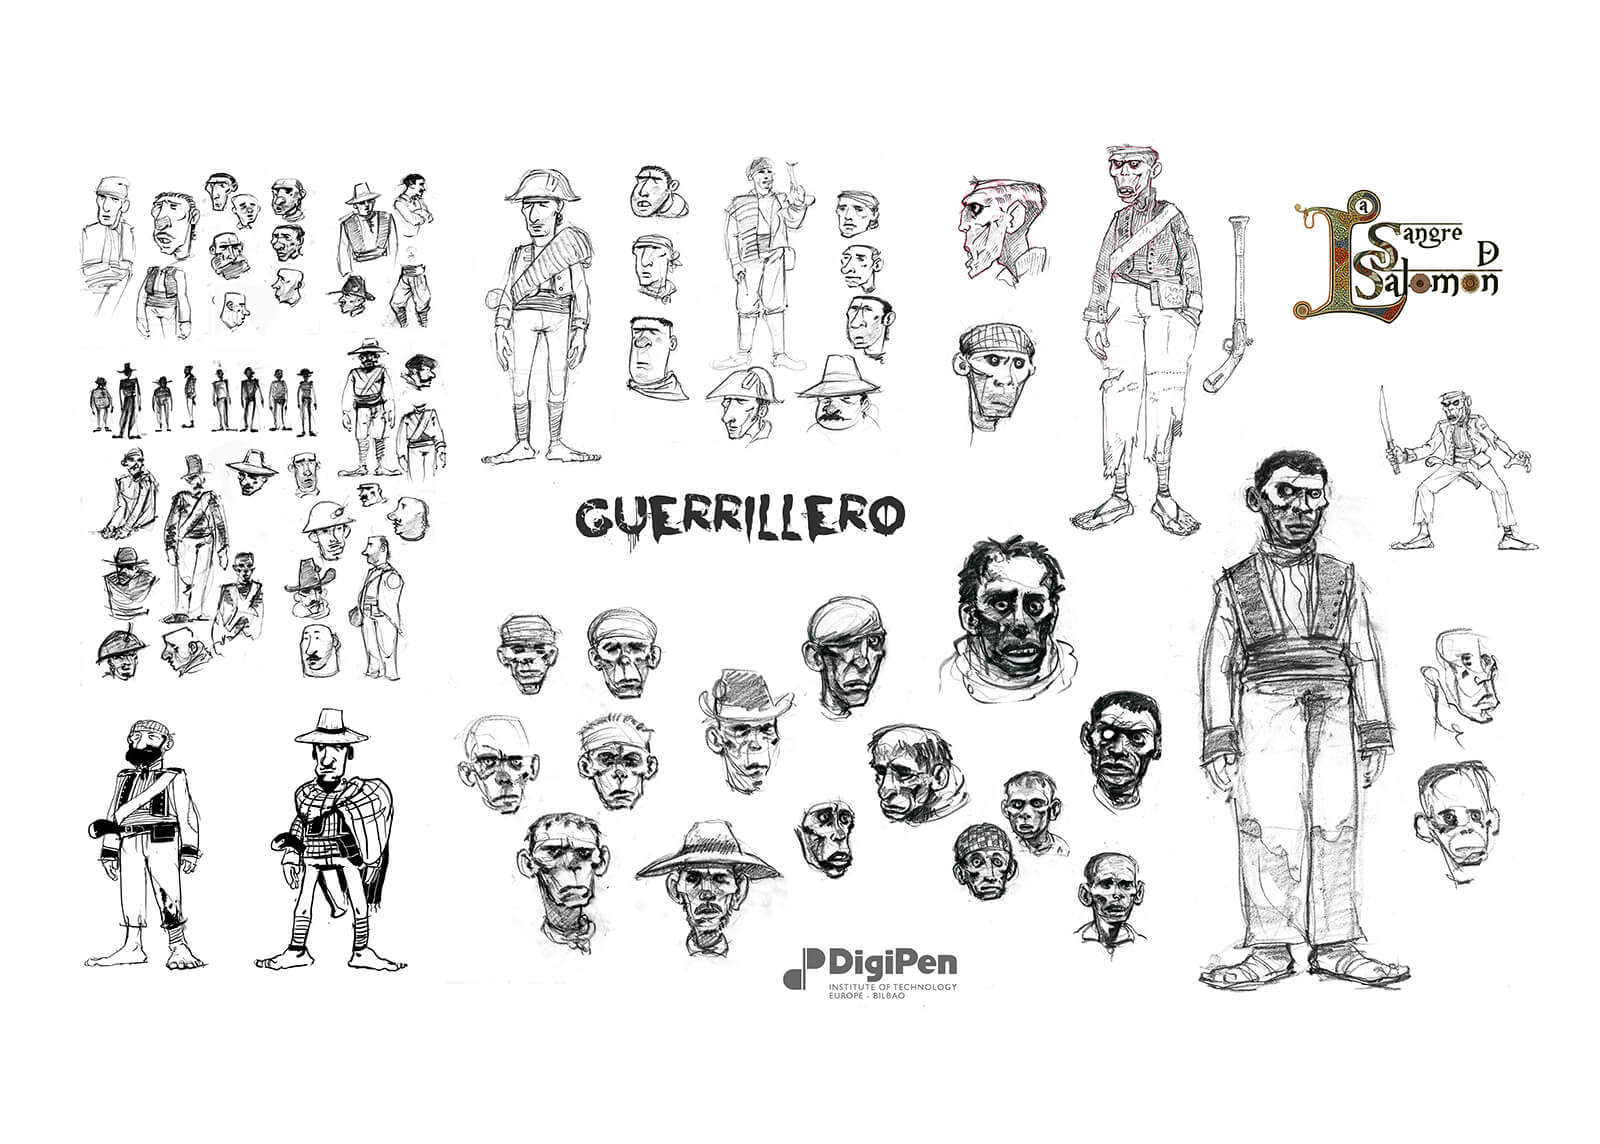 Concept drawings of Guerrillero from La Sangre de Salomon